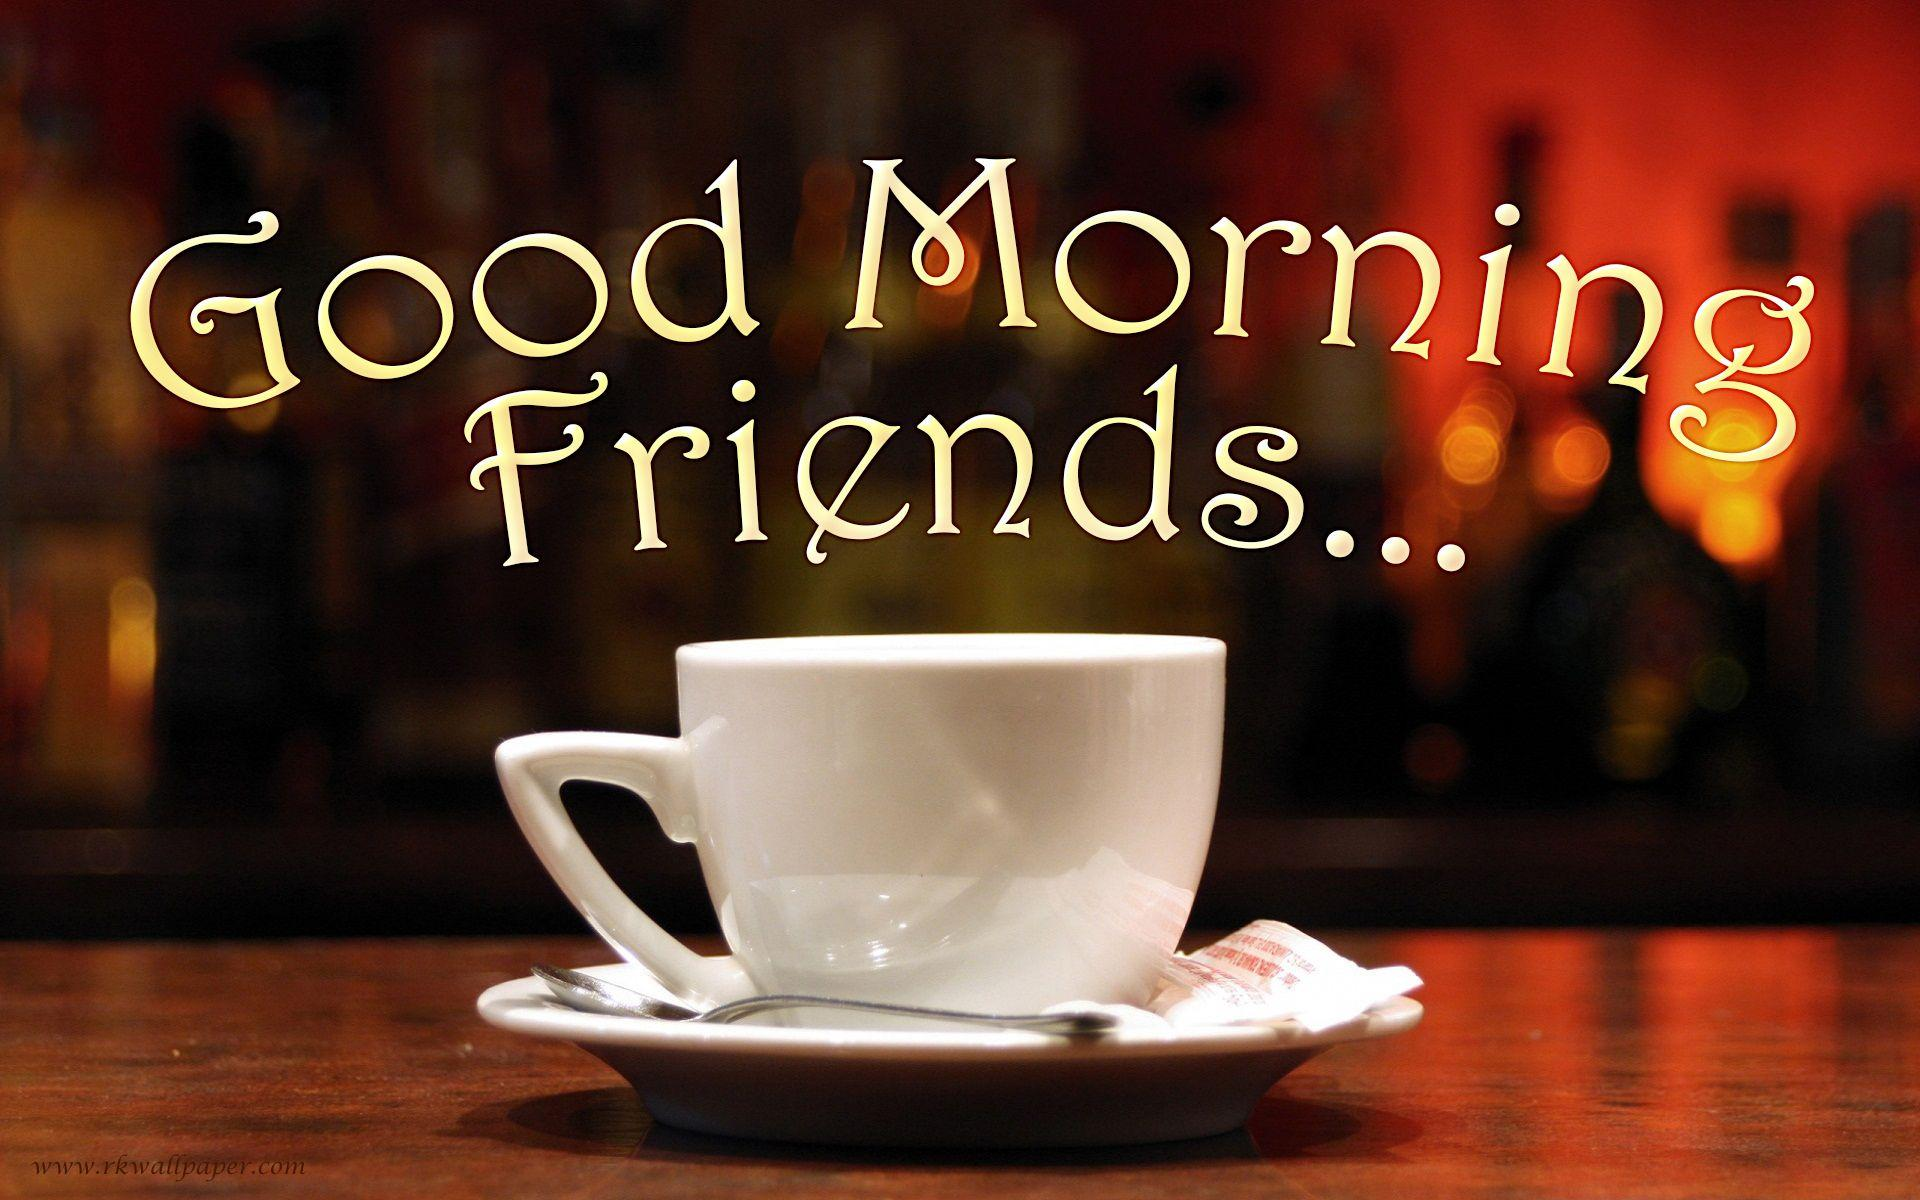 Good Morning Friend Wallpapers ...